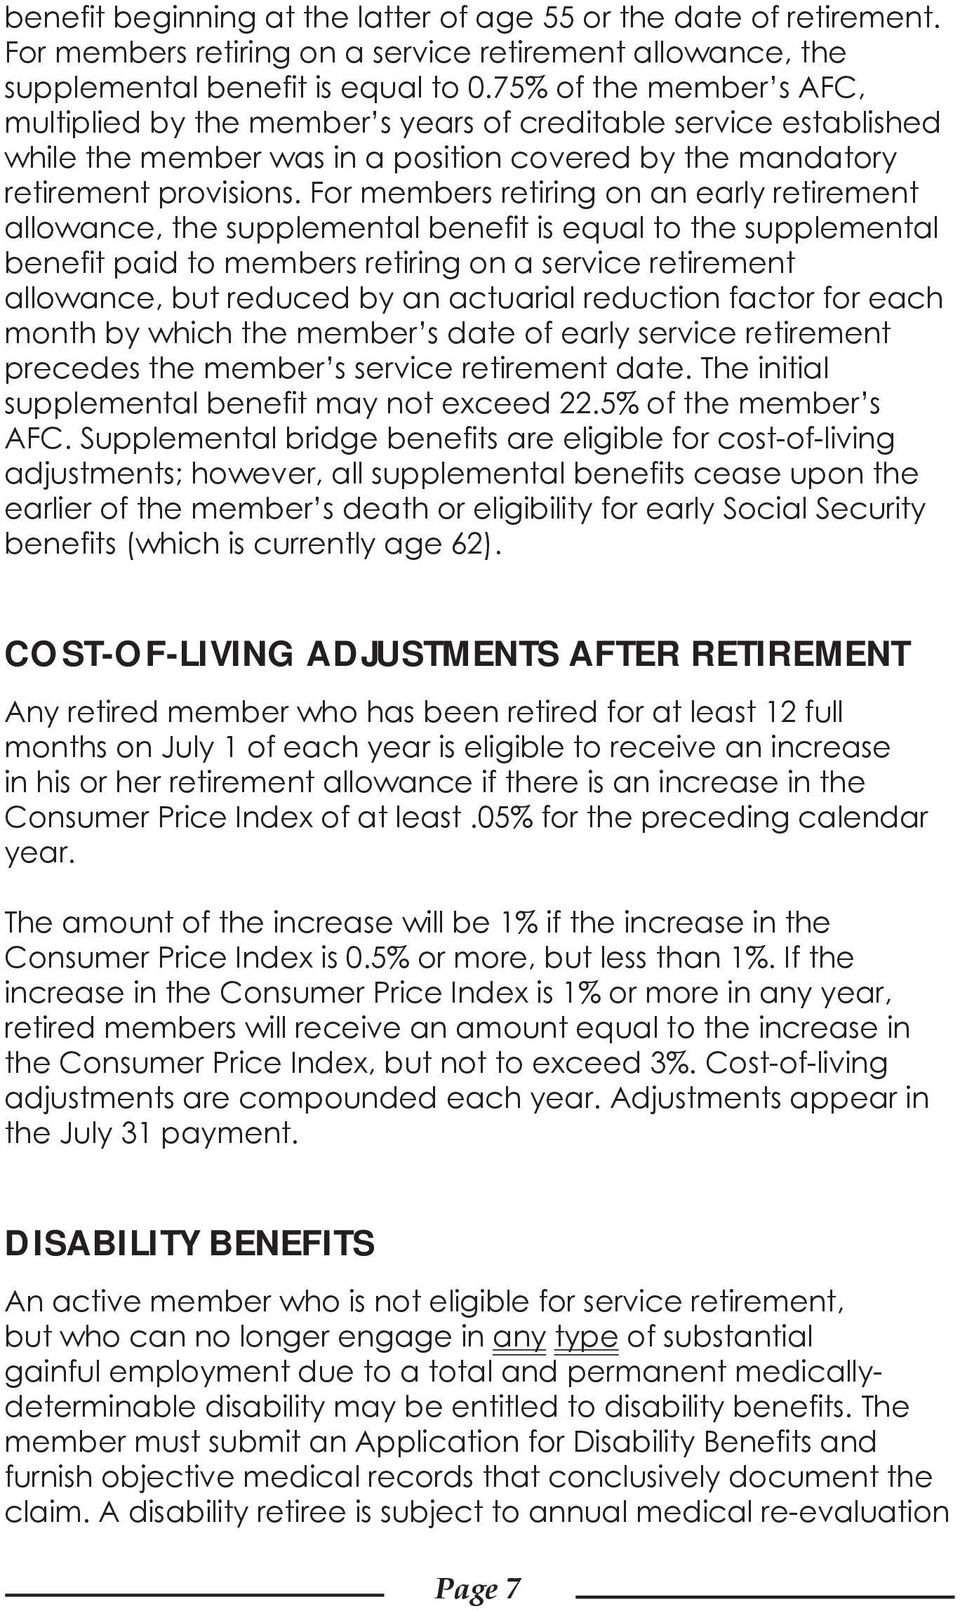 For members retiring on an early retirement allowance, the supplemental benefit is equal to the supplemental benefit paid to members retiring on a service retirement allowance, but reduced by an